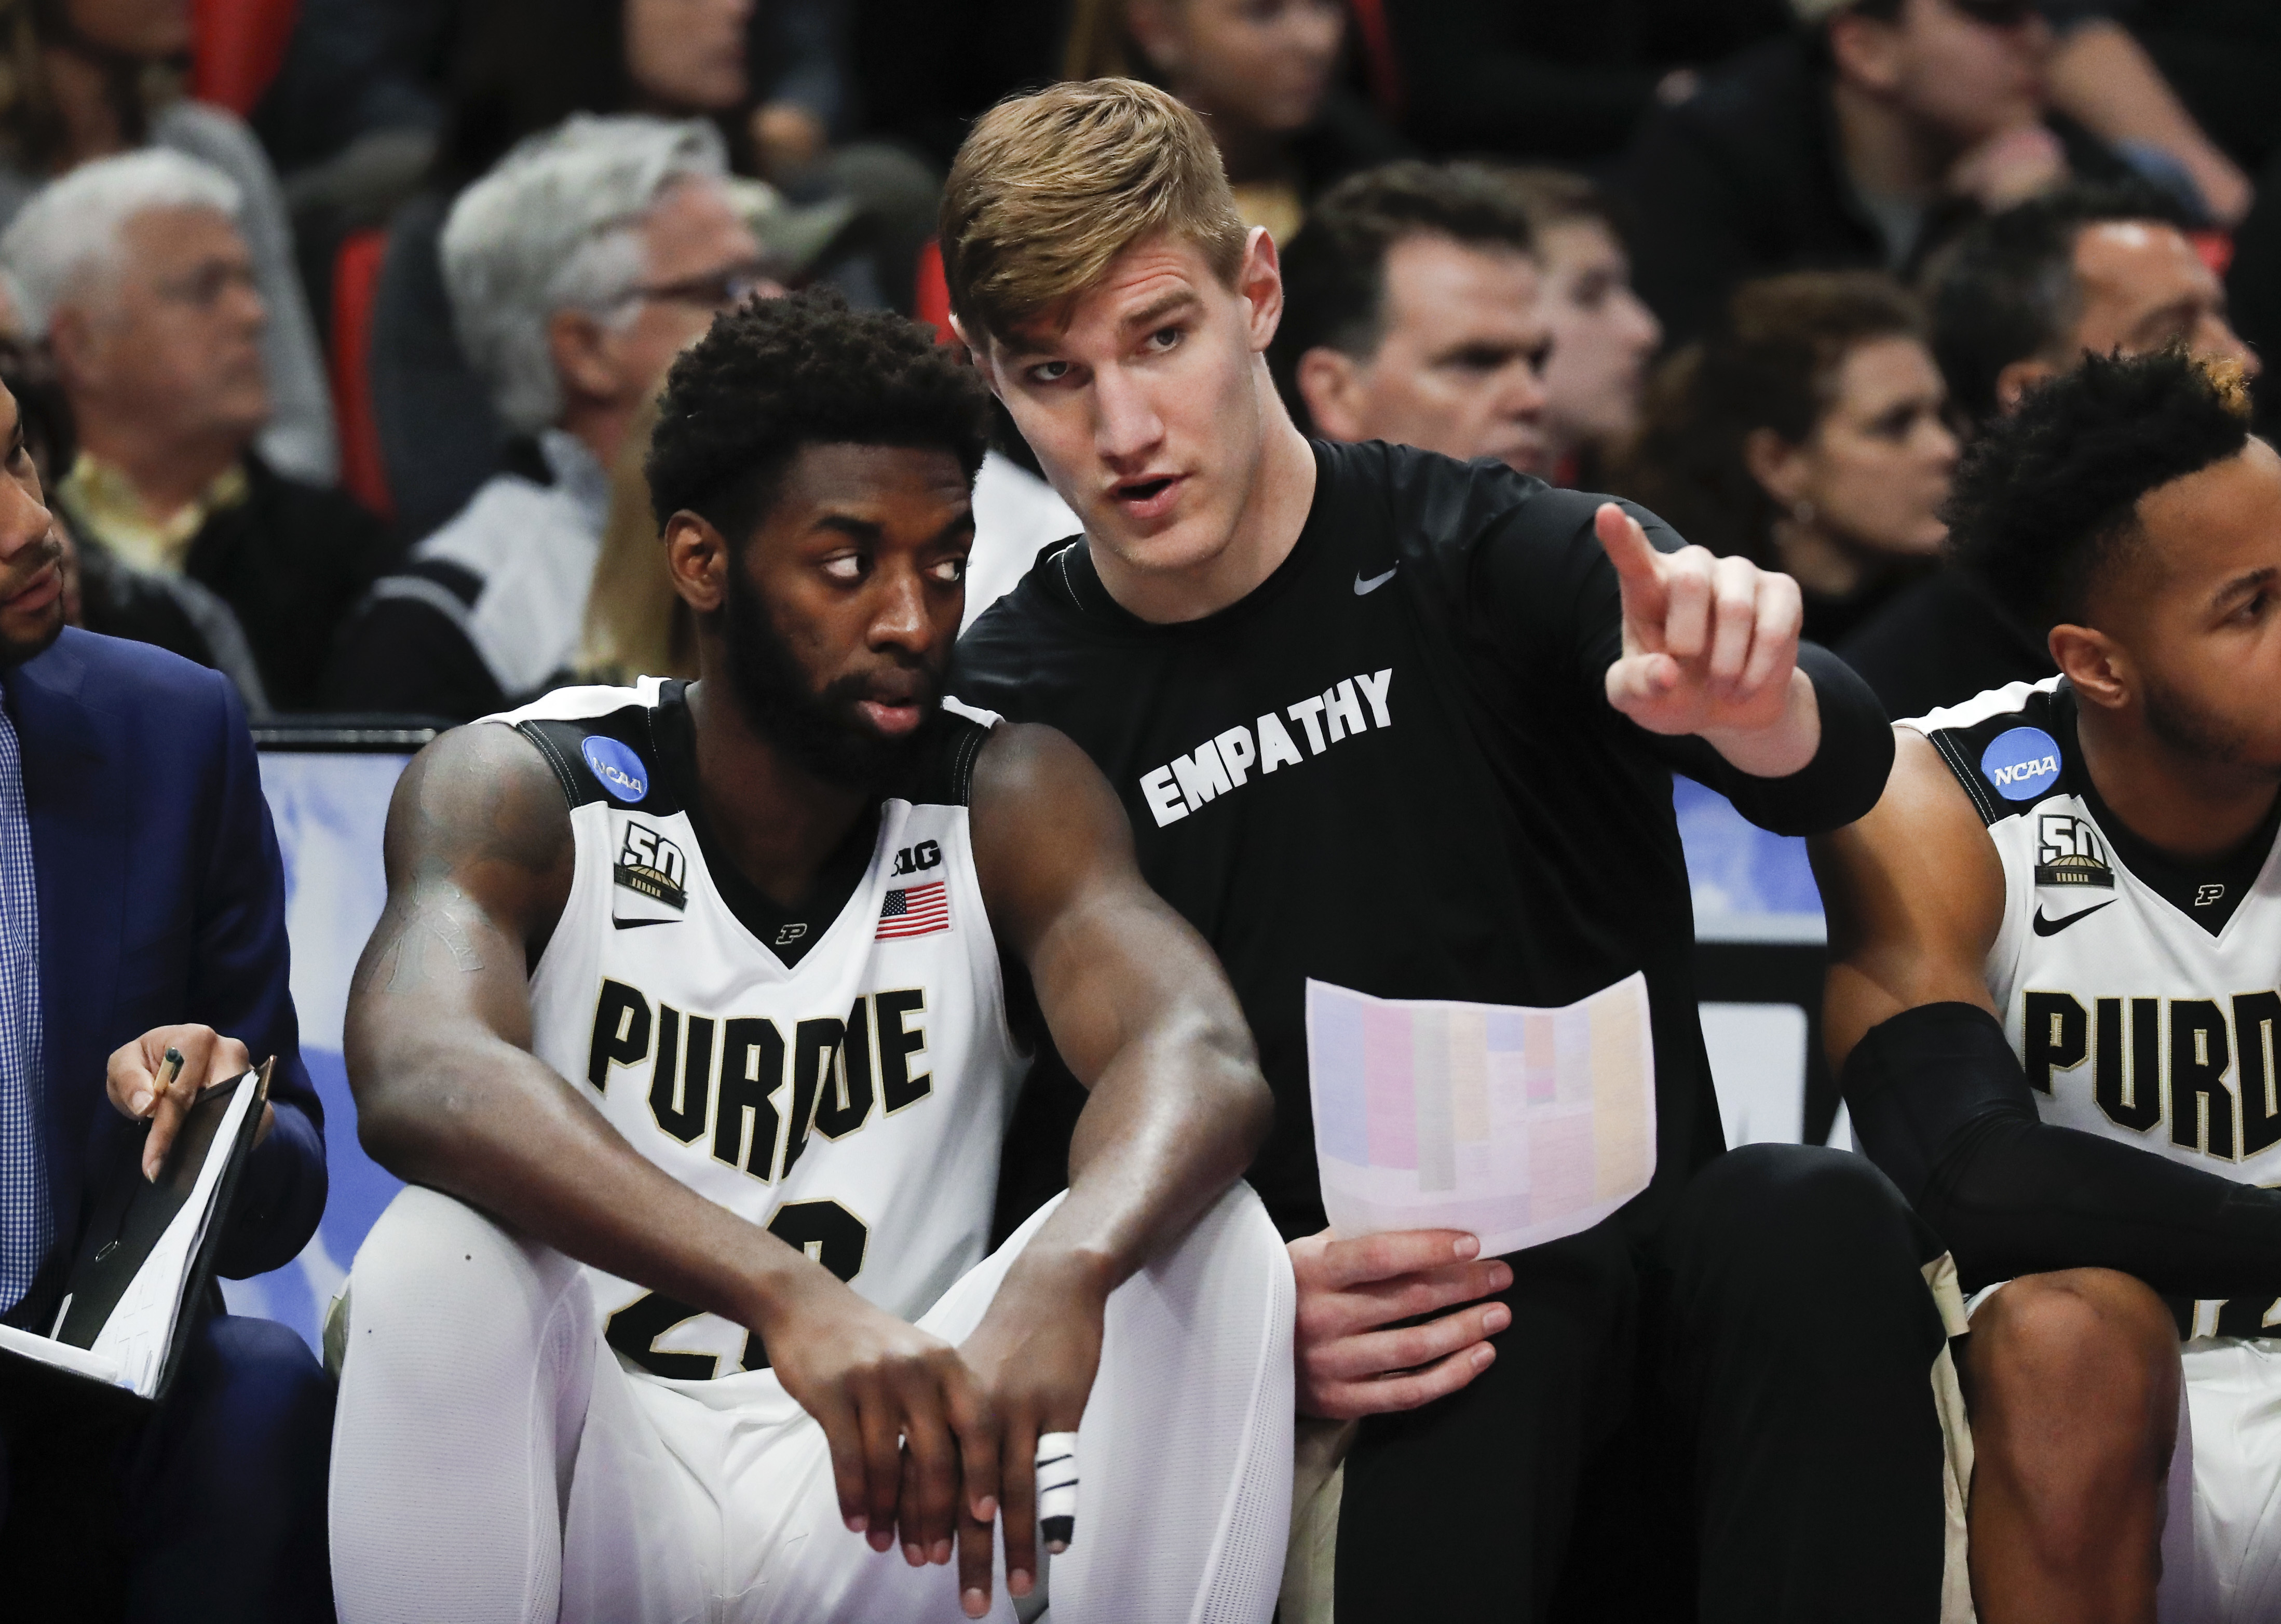 Purdue backup forward Jacquil Taylor plans to transfer - WISH-TV ...